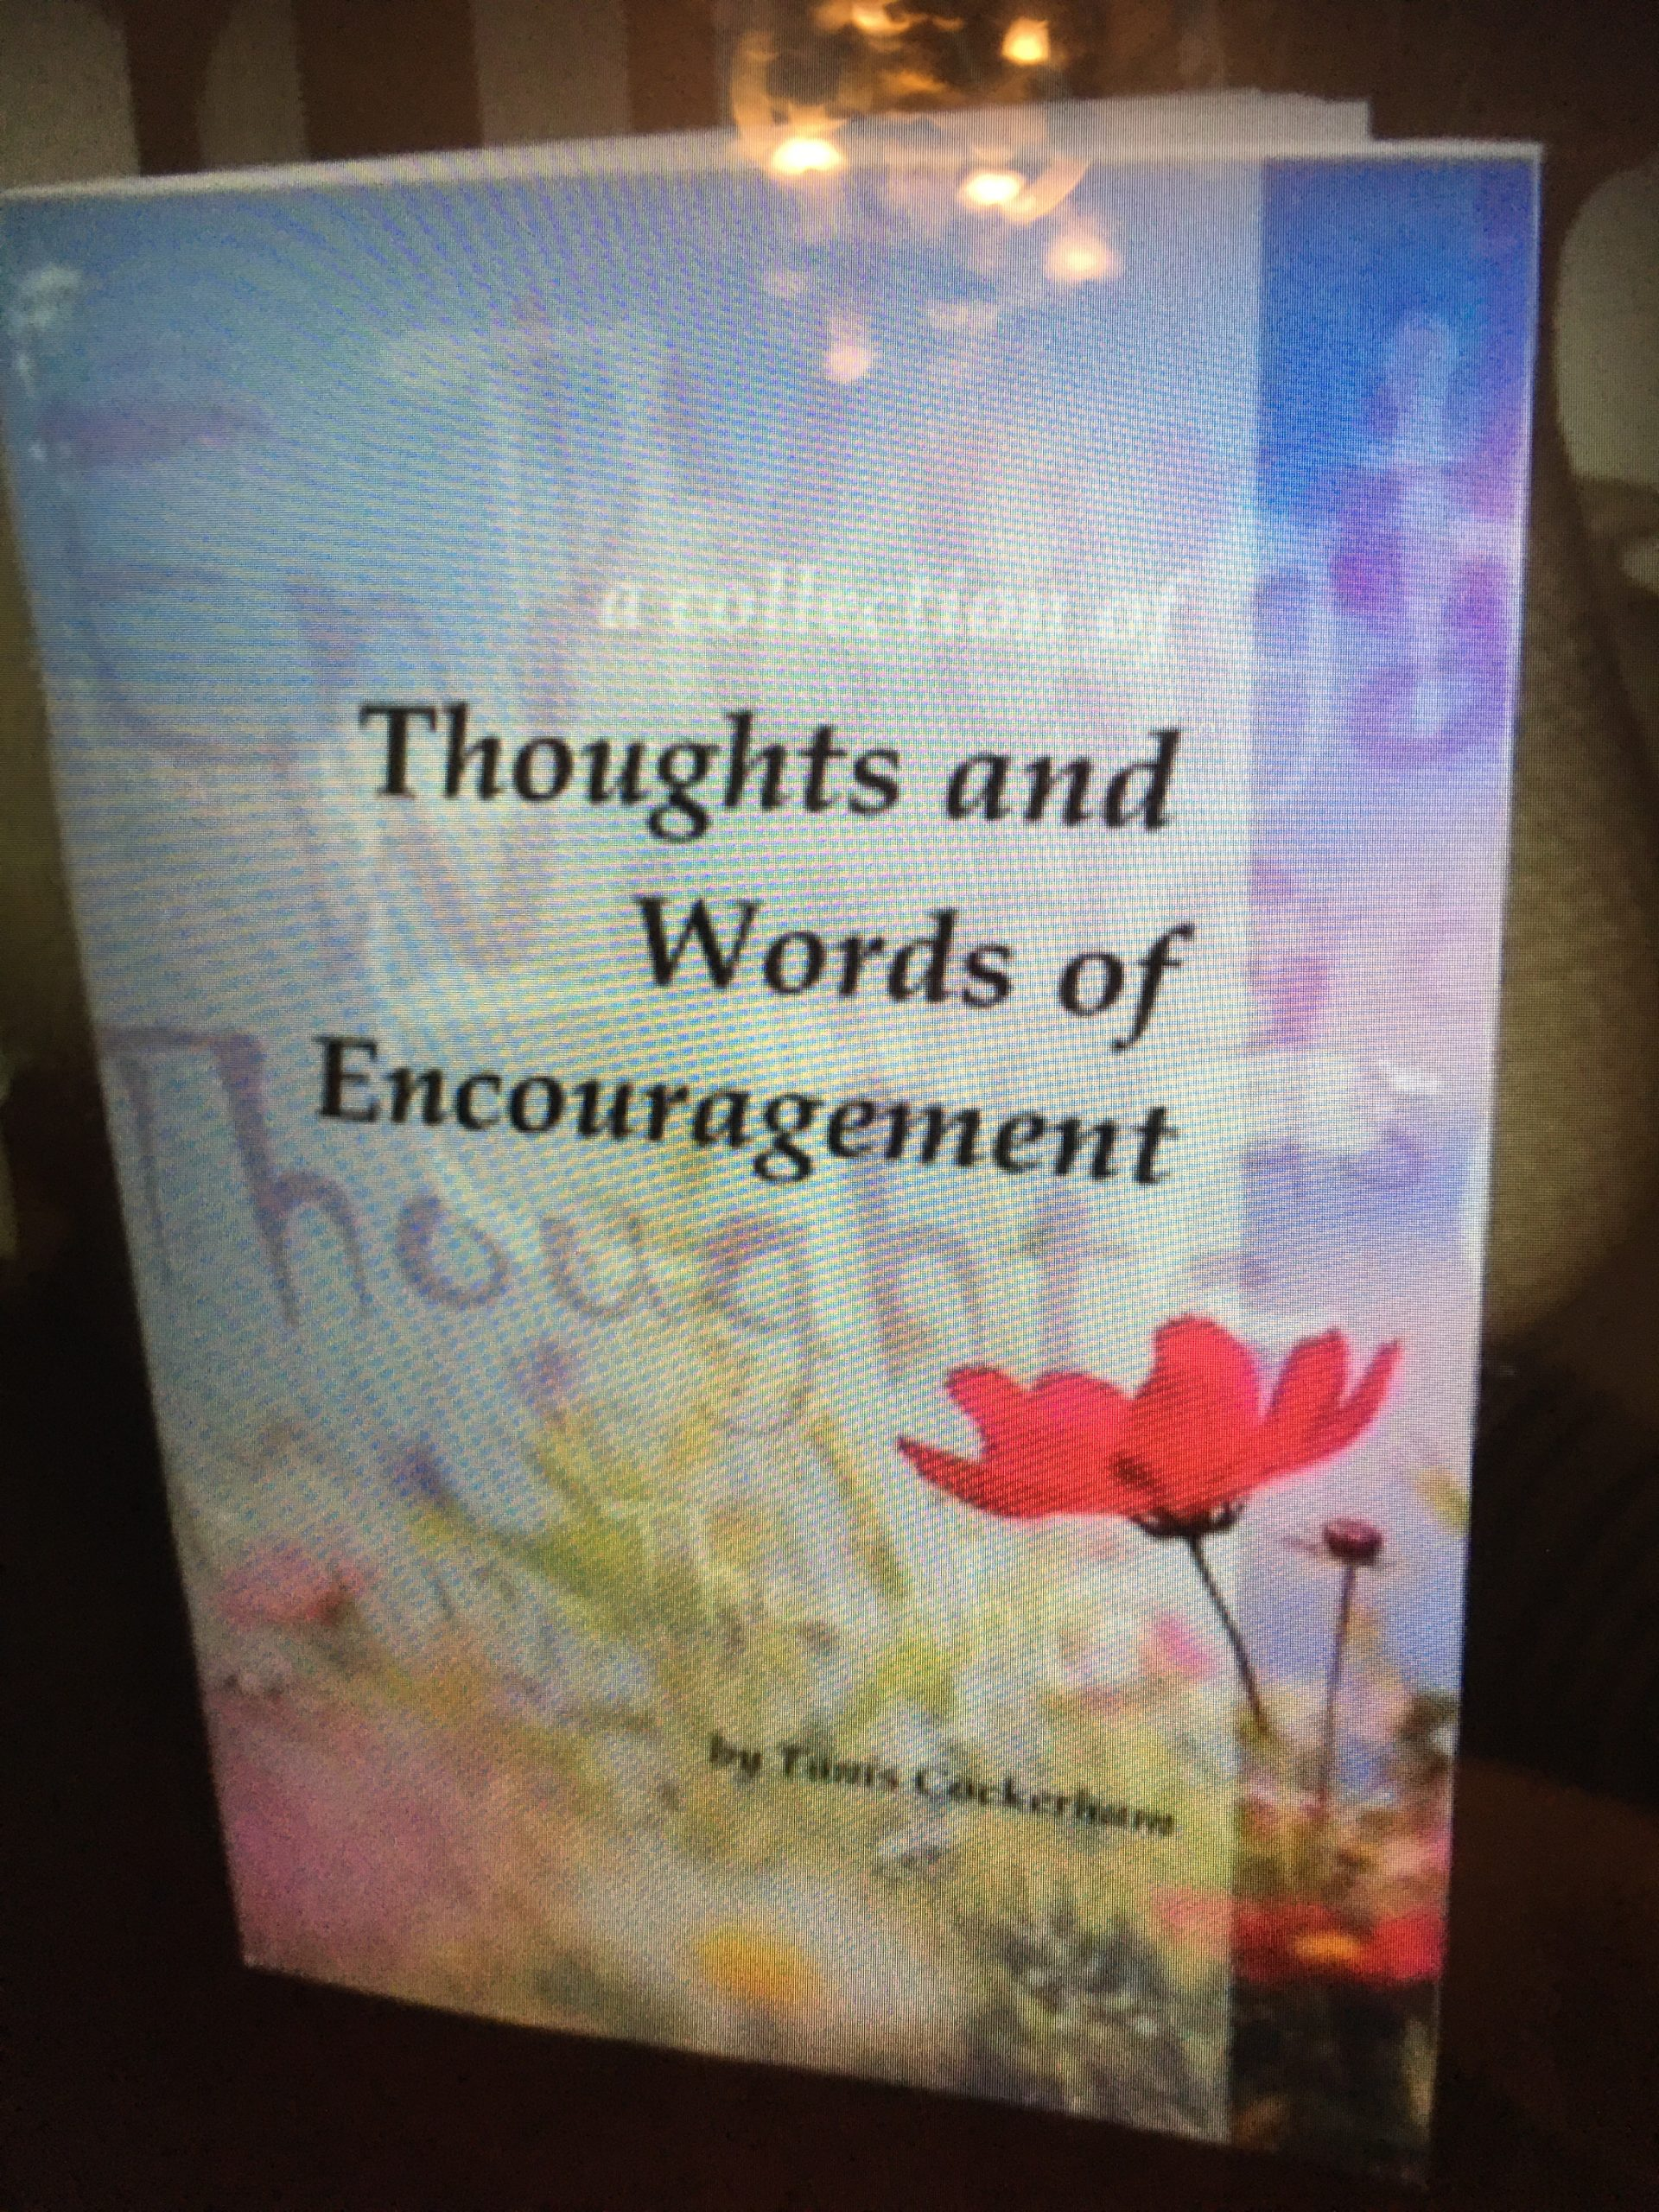 Book of encouragement by Tanis Cockerham